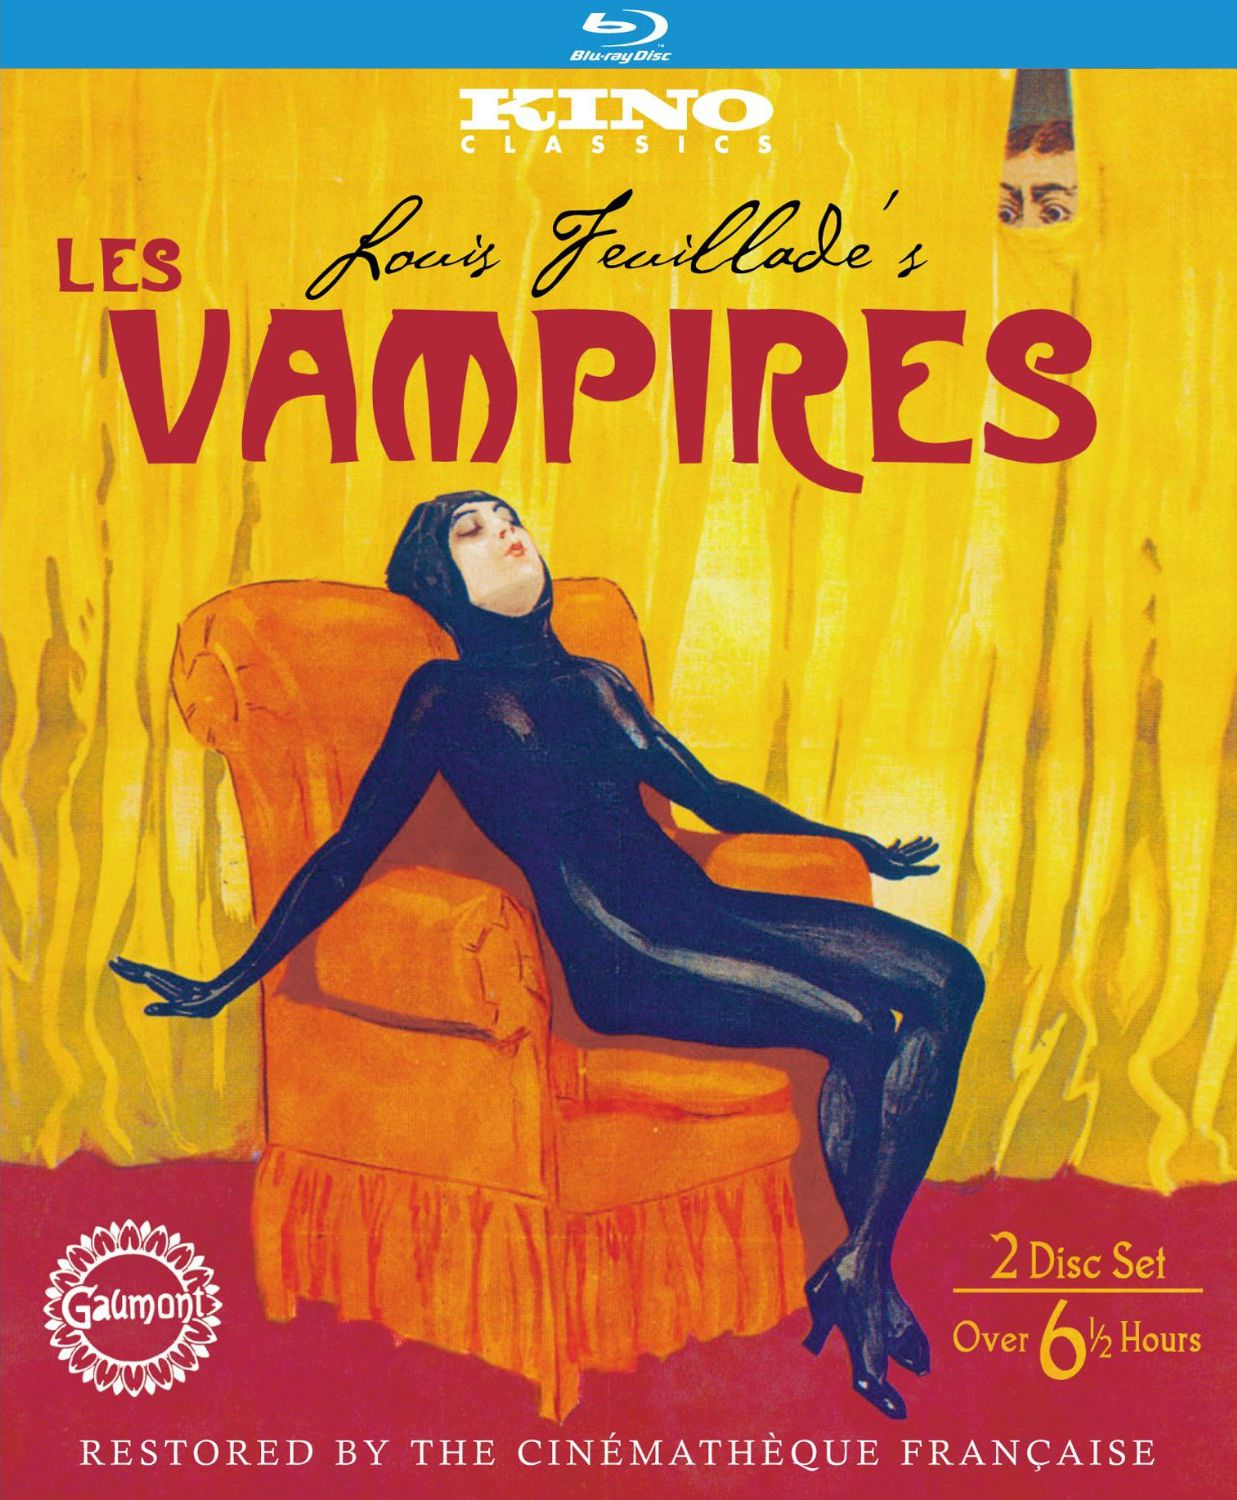 Publicity still for Les Vampires